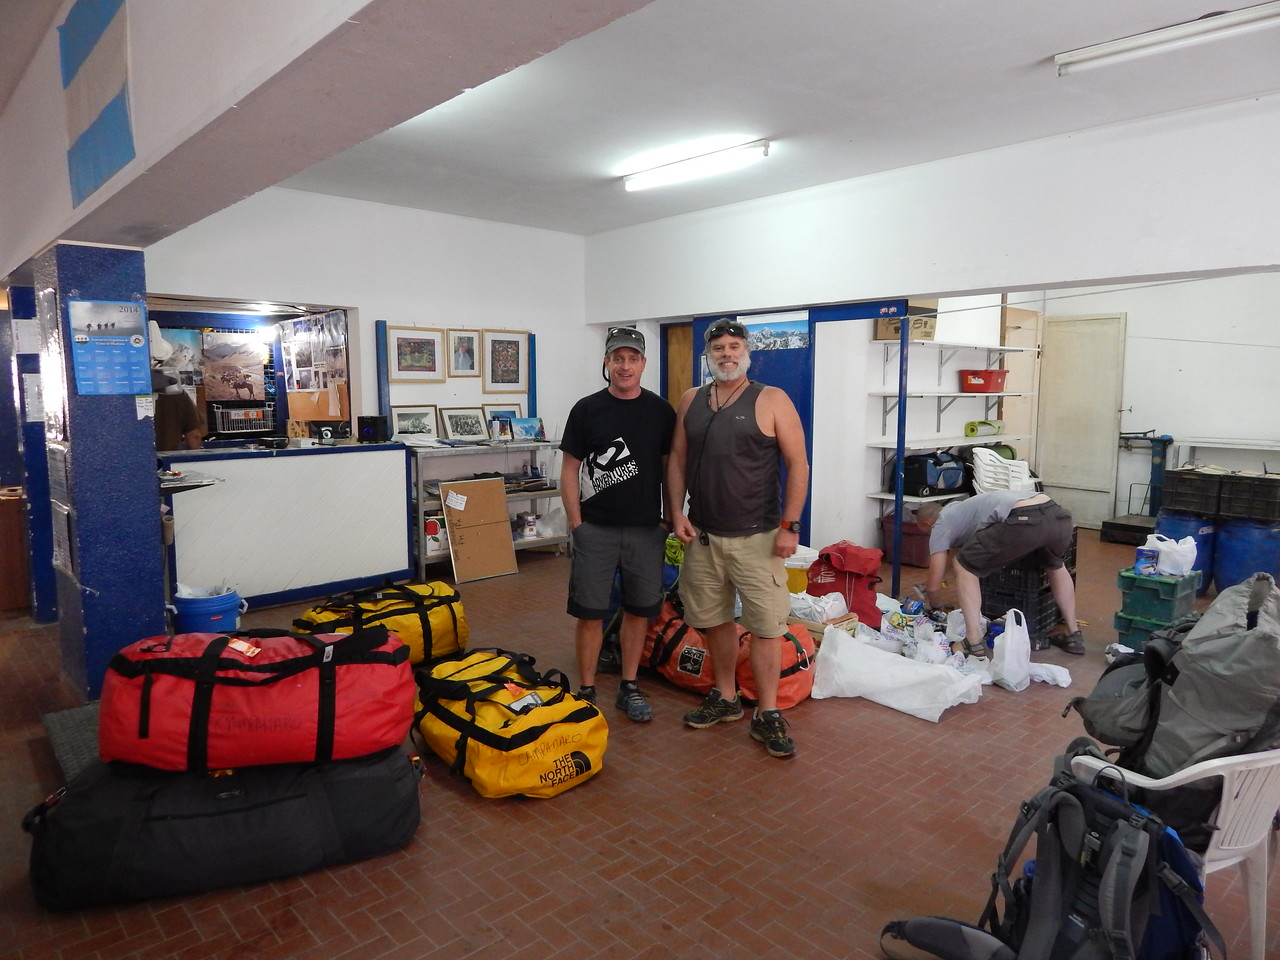 Night before we head to mountain. Organizing all our gear and food.